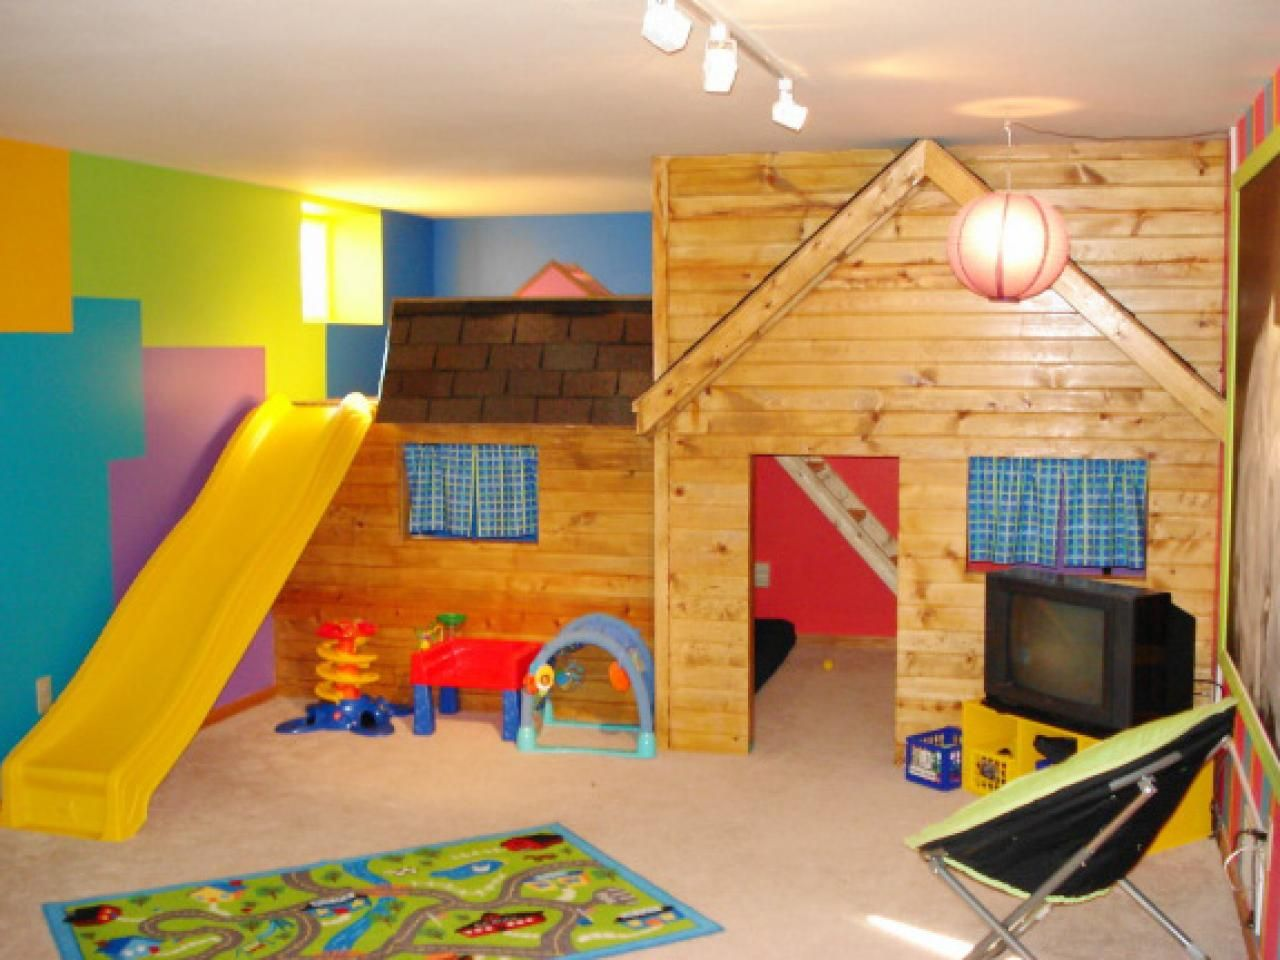 Playrooms Ideas Boys' Playroom Ideas  Boys Playroom Ideas Playrooms And Hgtv